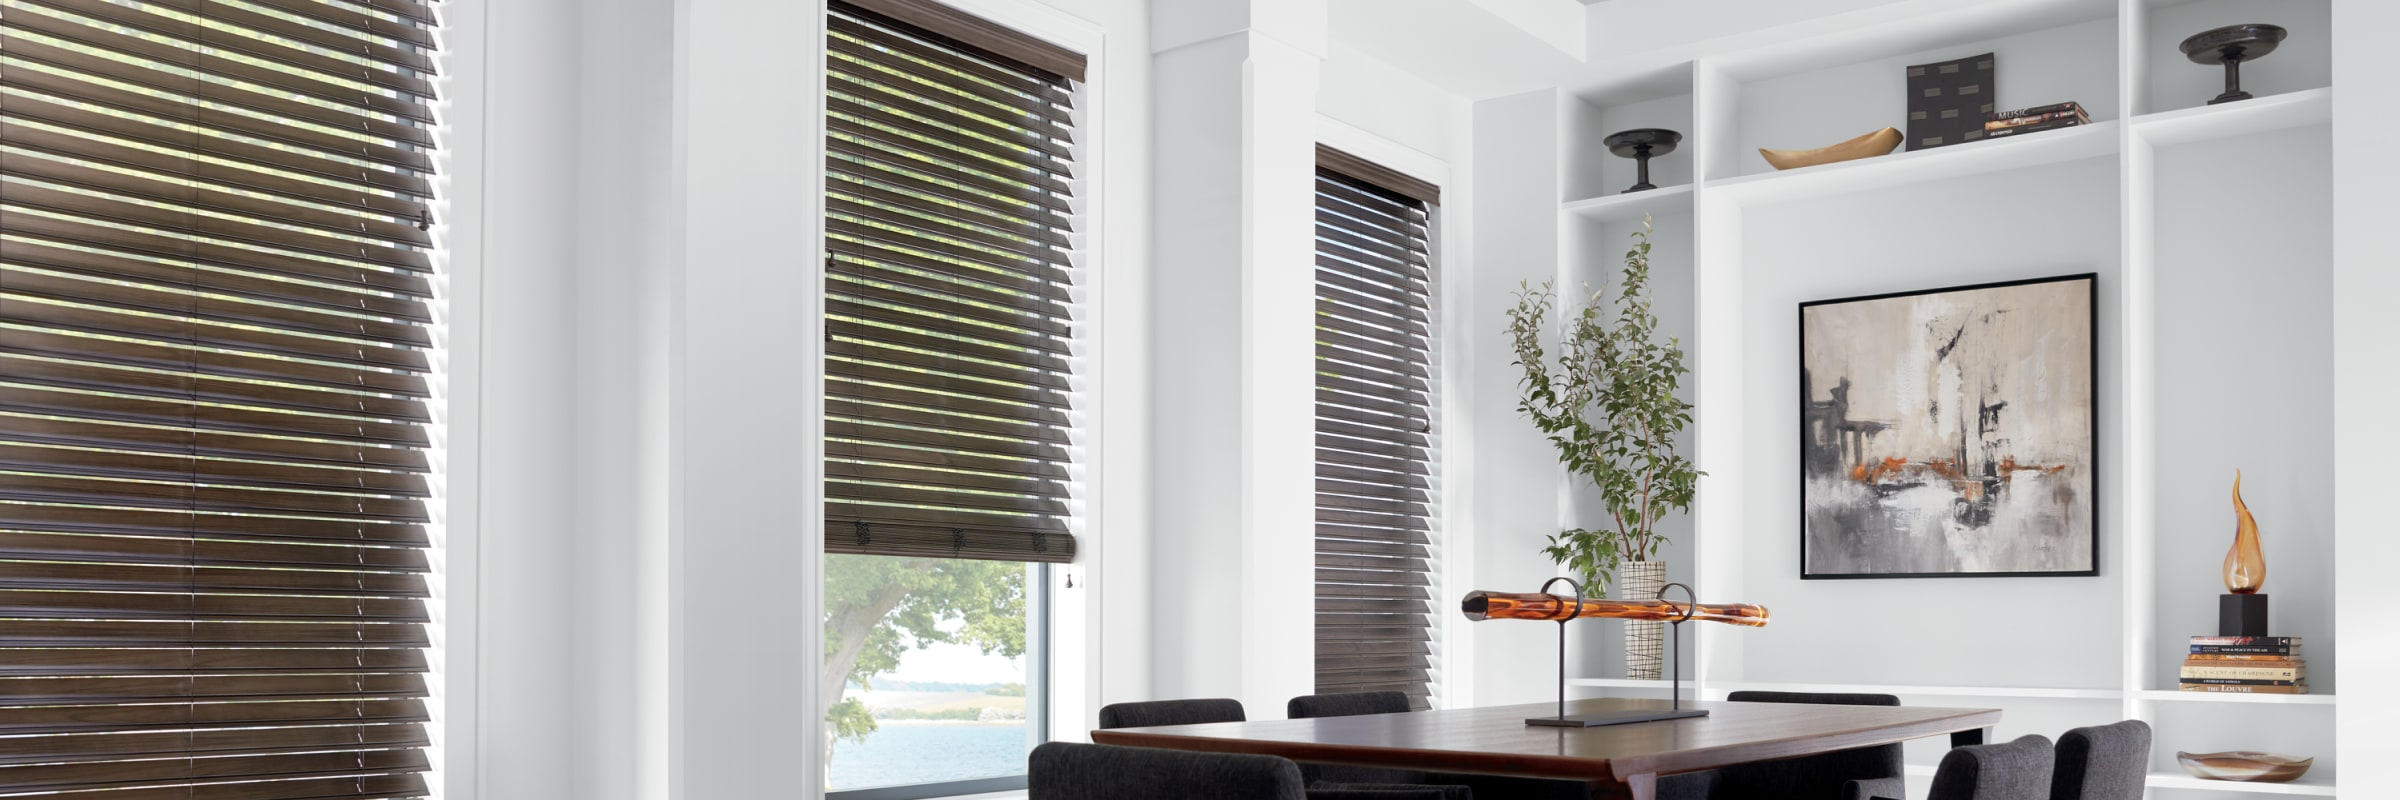 Alternative wood blinds in Patina Alternative Wood Chateau - EverWood